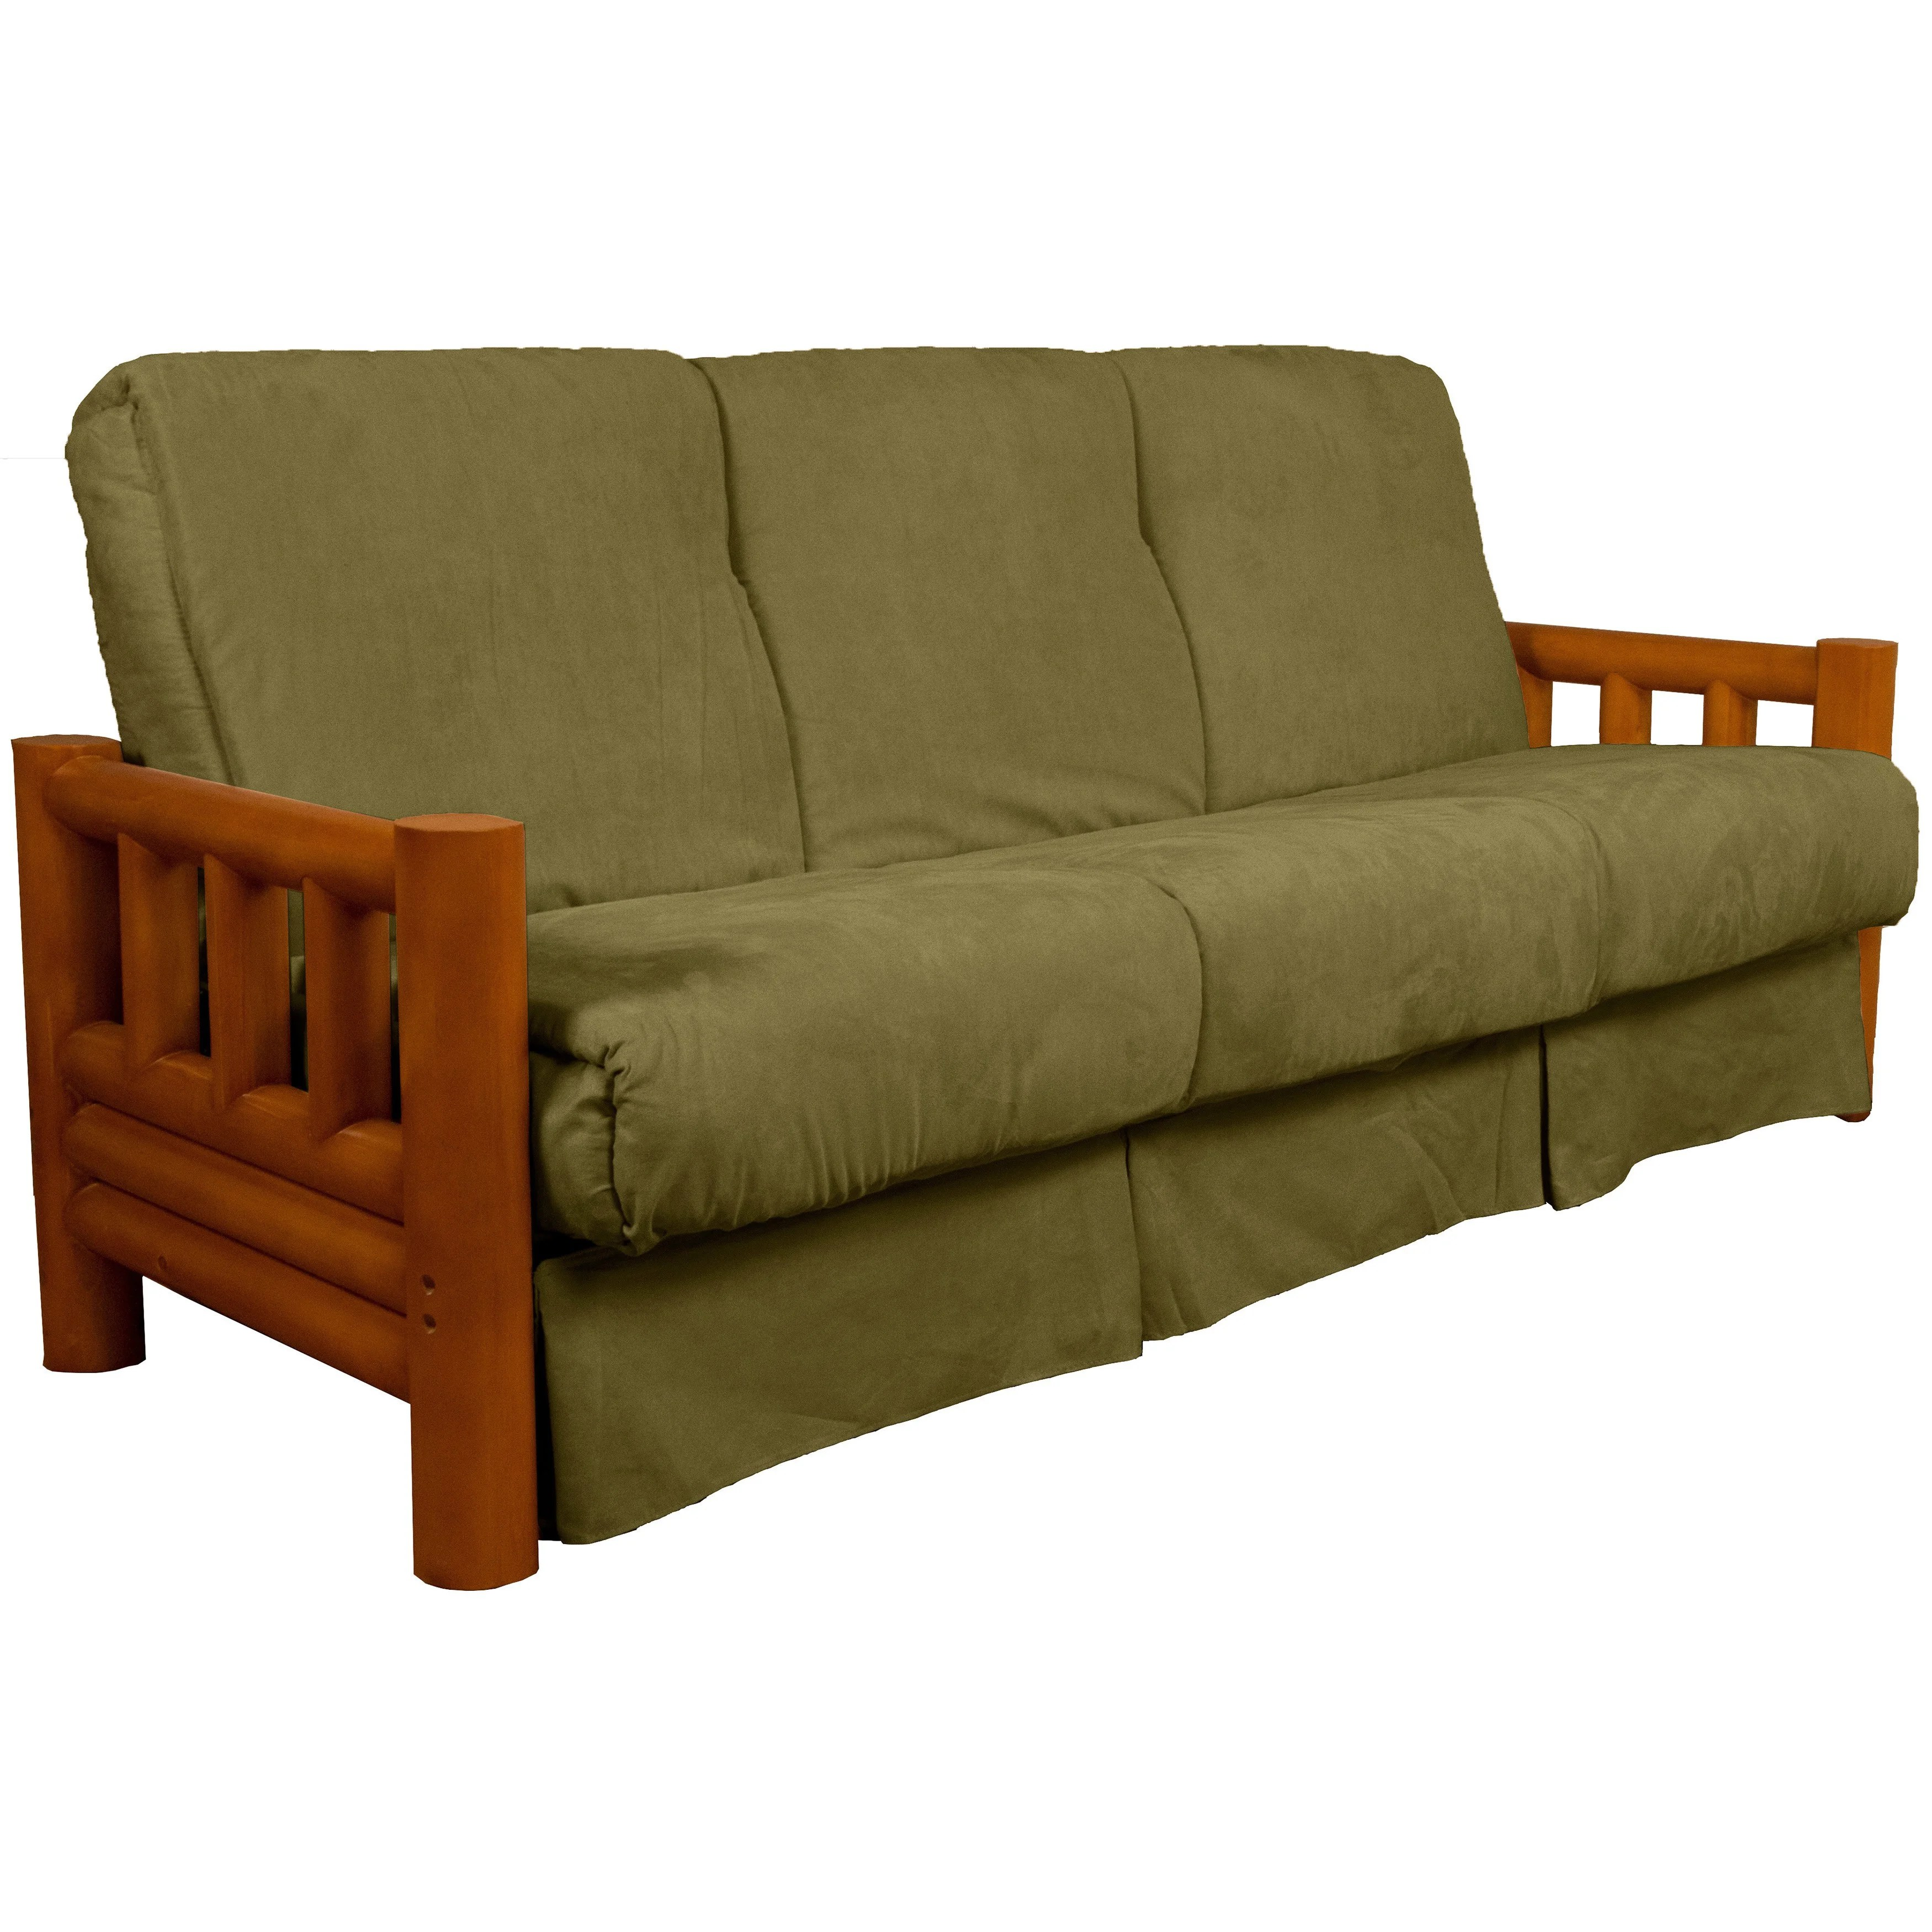 lodge sofa set online australia pine canopy tuskegee style pillow top sleeper